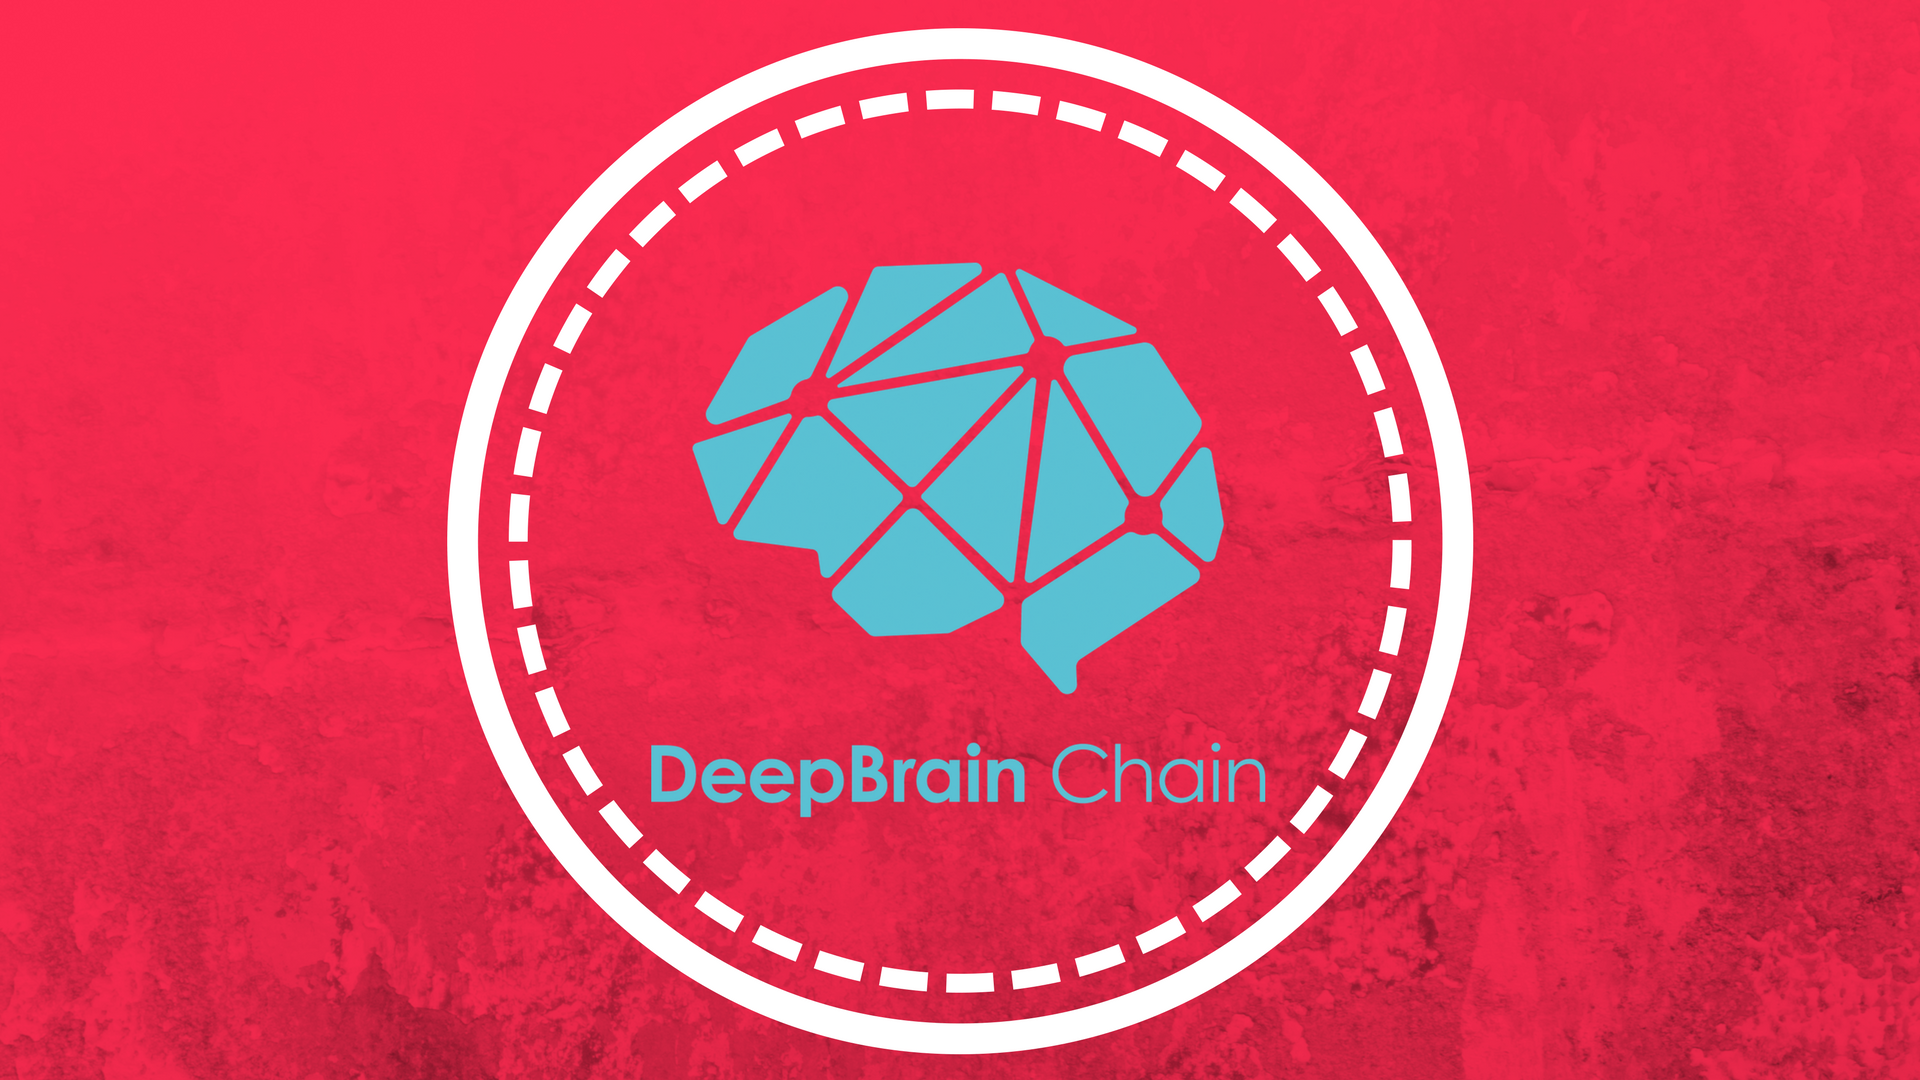 Deep Brain Chain